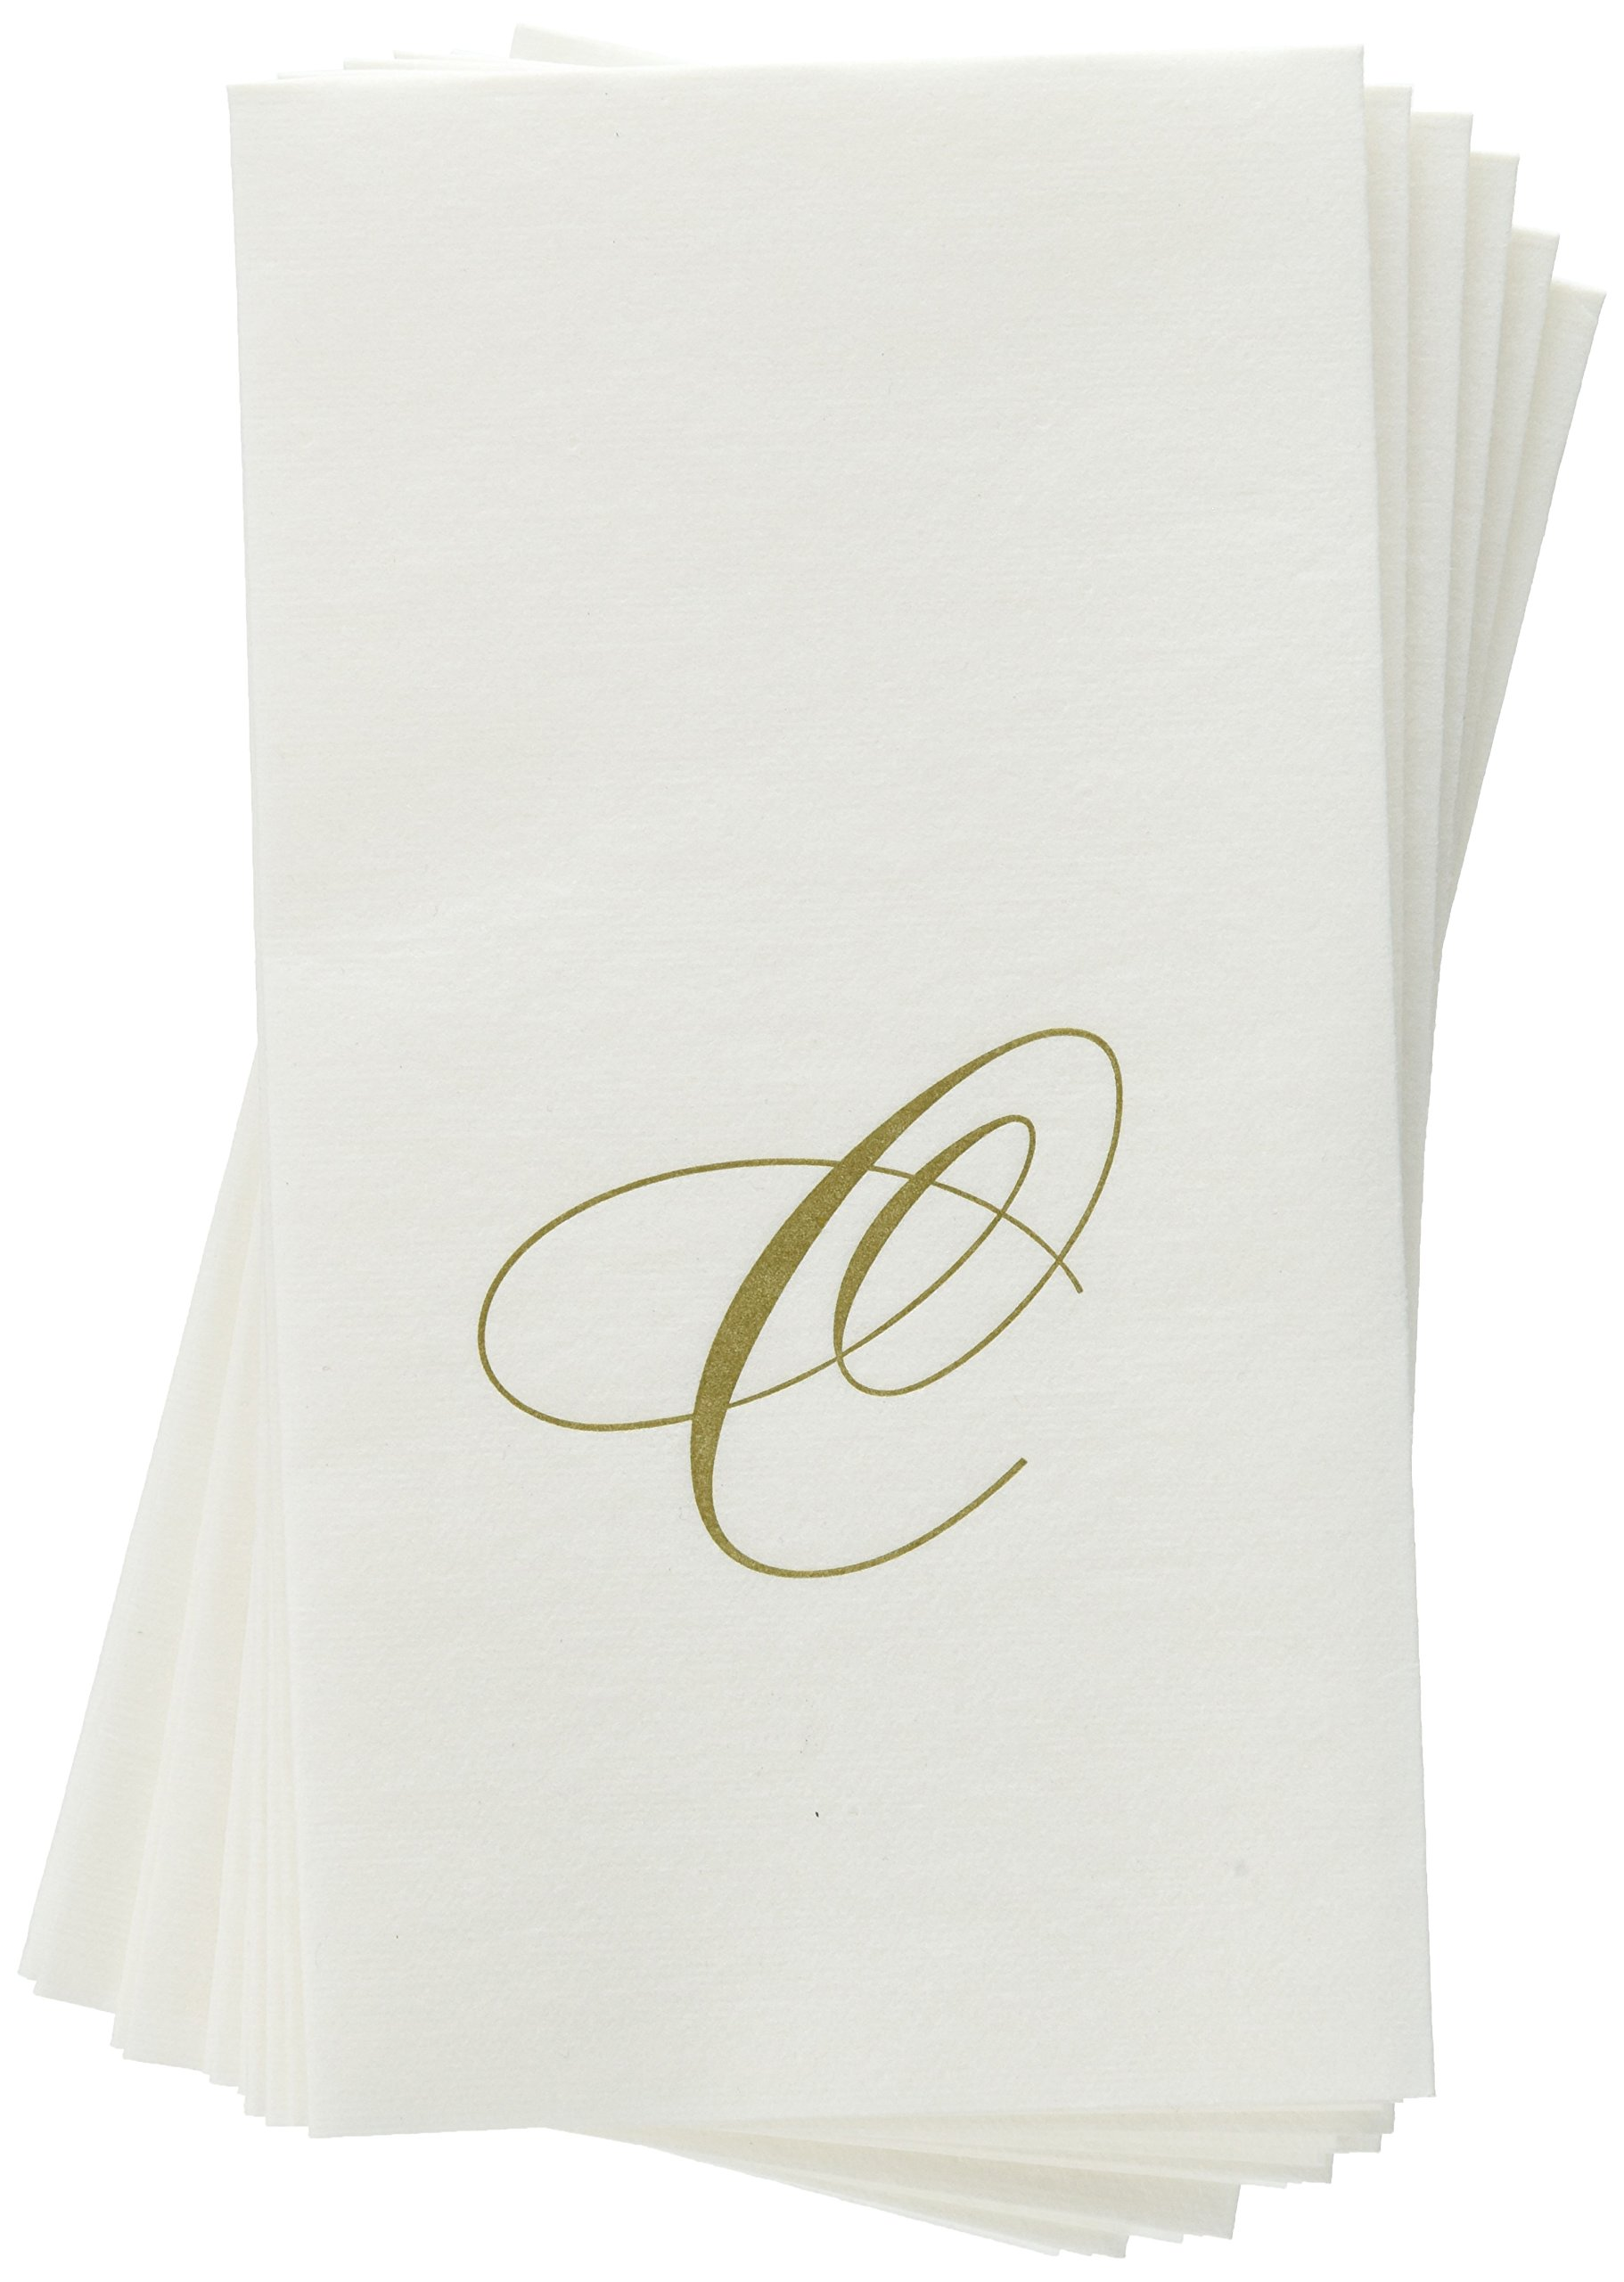 Entertaining with Caspari White Pearl Paper Linen Guest Towels, Monogram Initial C, Pack of 24